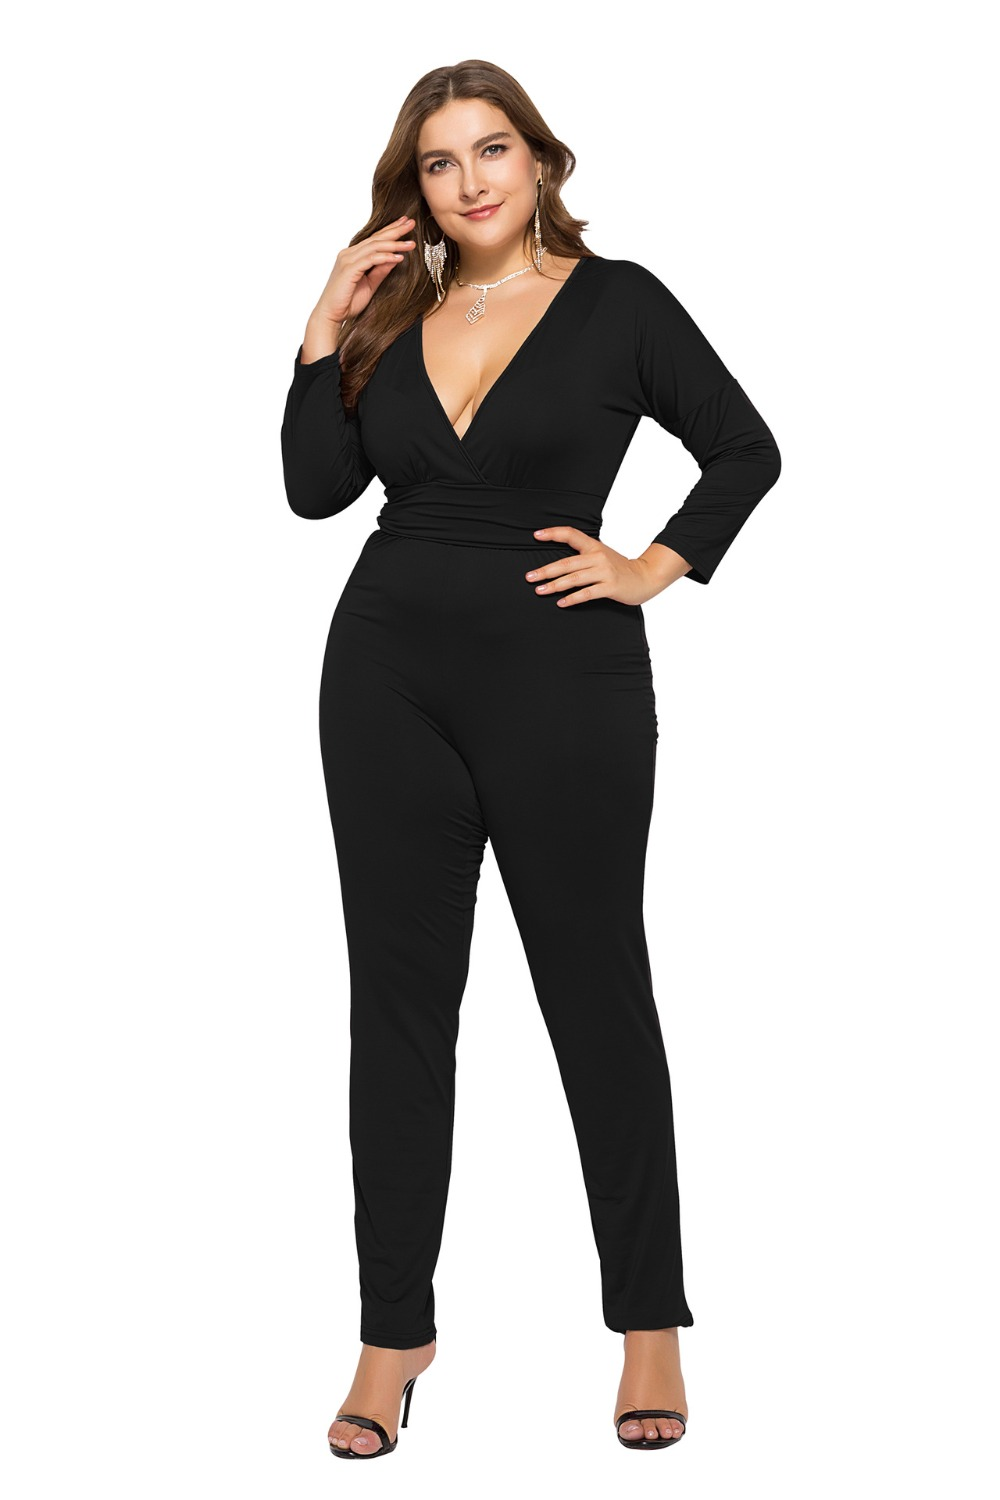 Sexy V Neck Jumpsuit Women Casual Solid Long Sleeve Back Hollow Out Overalls For Women Bodycon Slim Female Body Elegant Jumpsuit